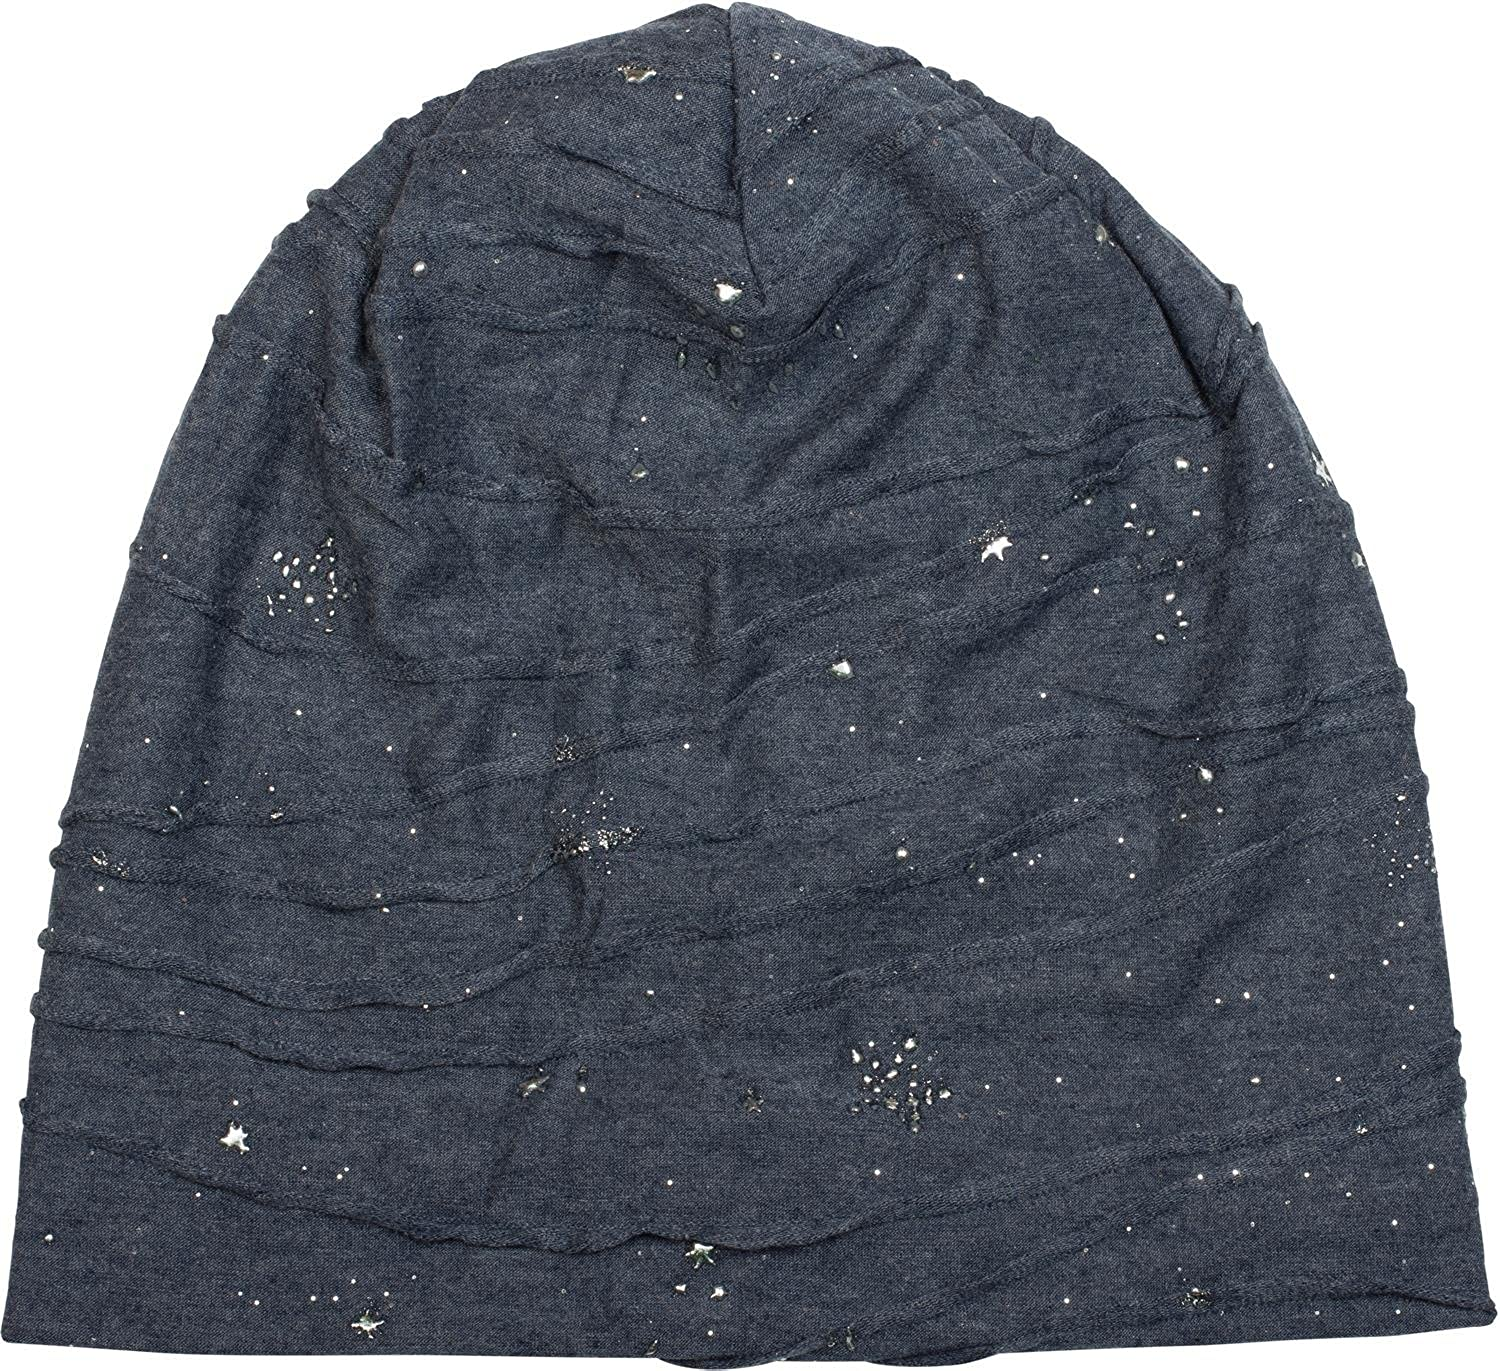 styleBREAKER Beanie with Metallic Splashes Stars and Sequins Unisex 04024136 Slouch Long Beanie